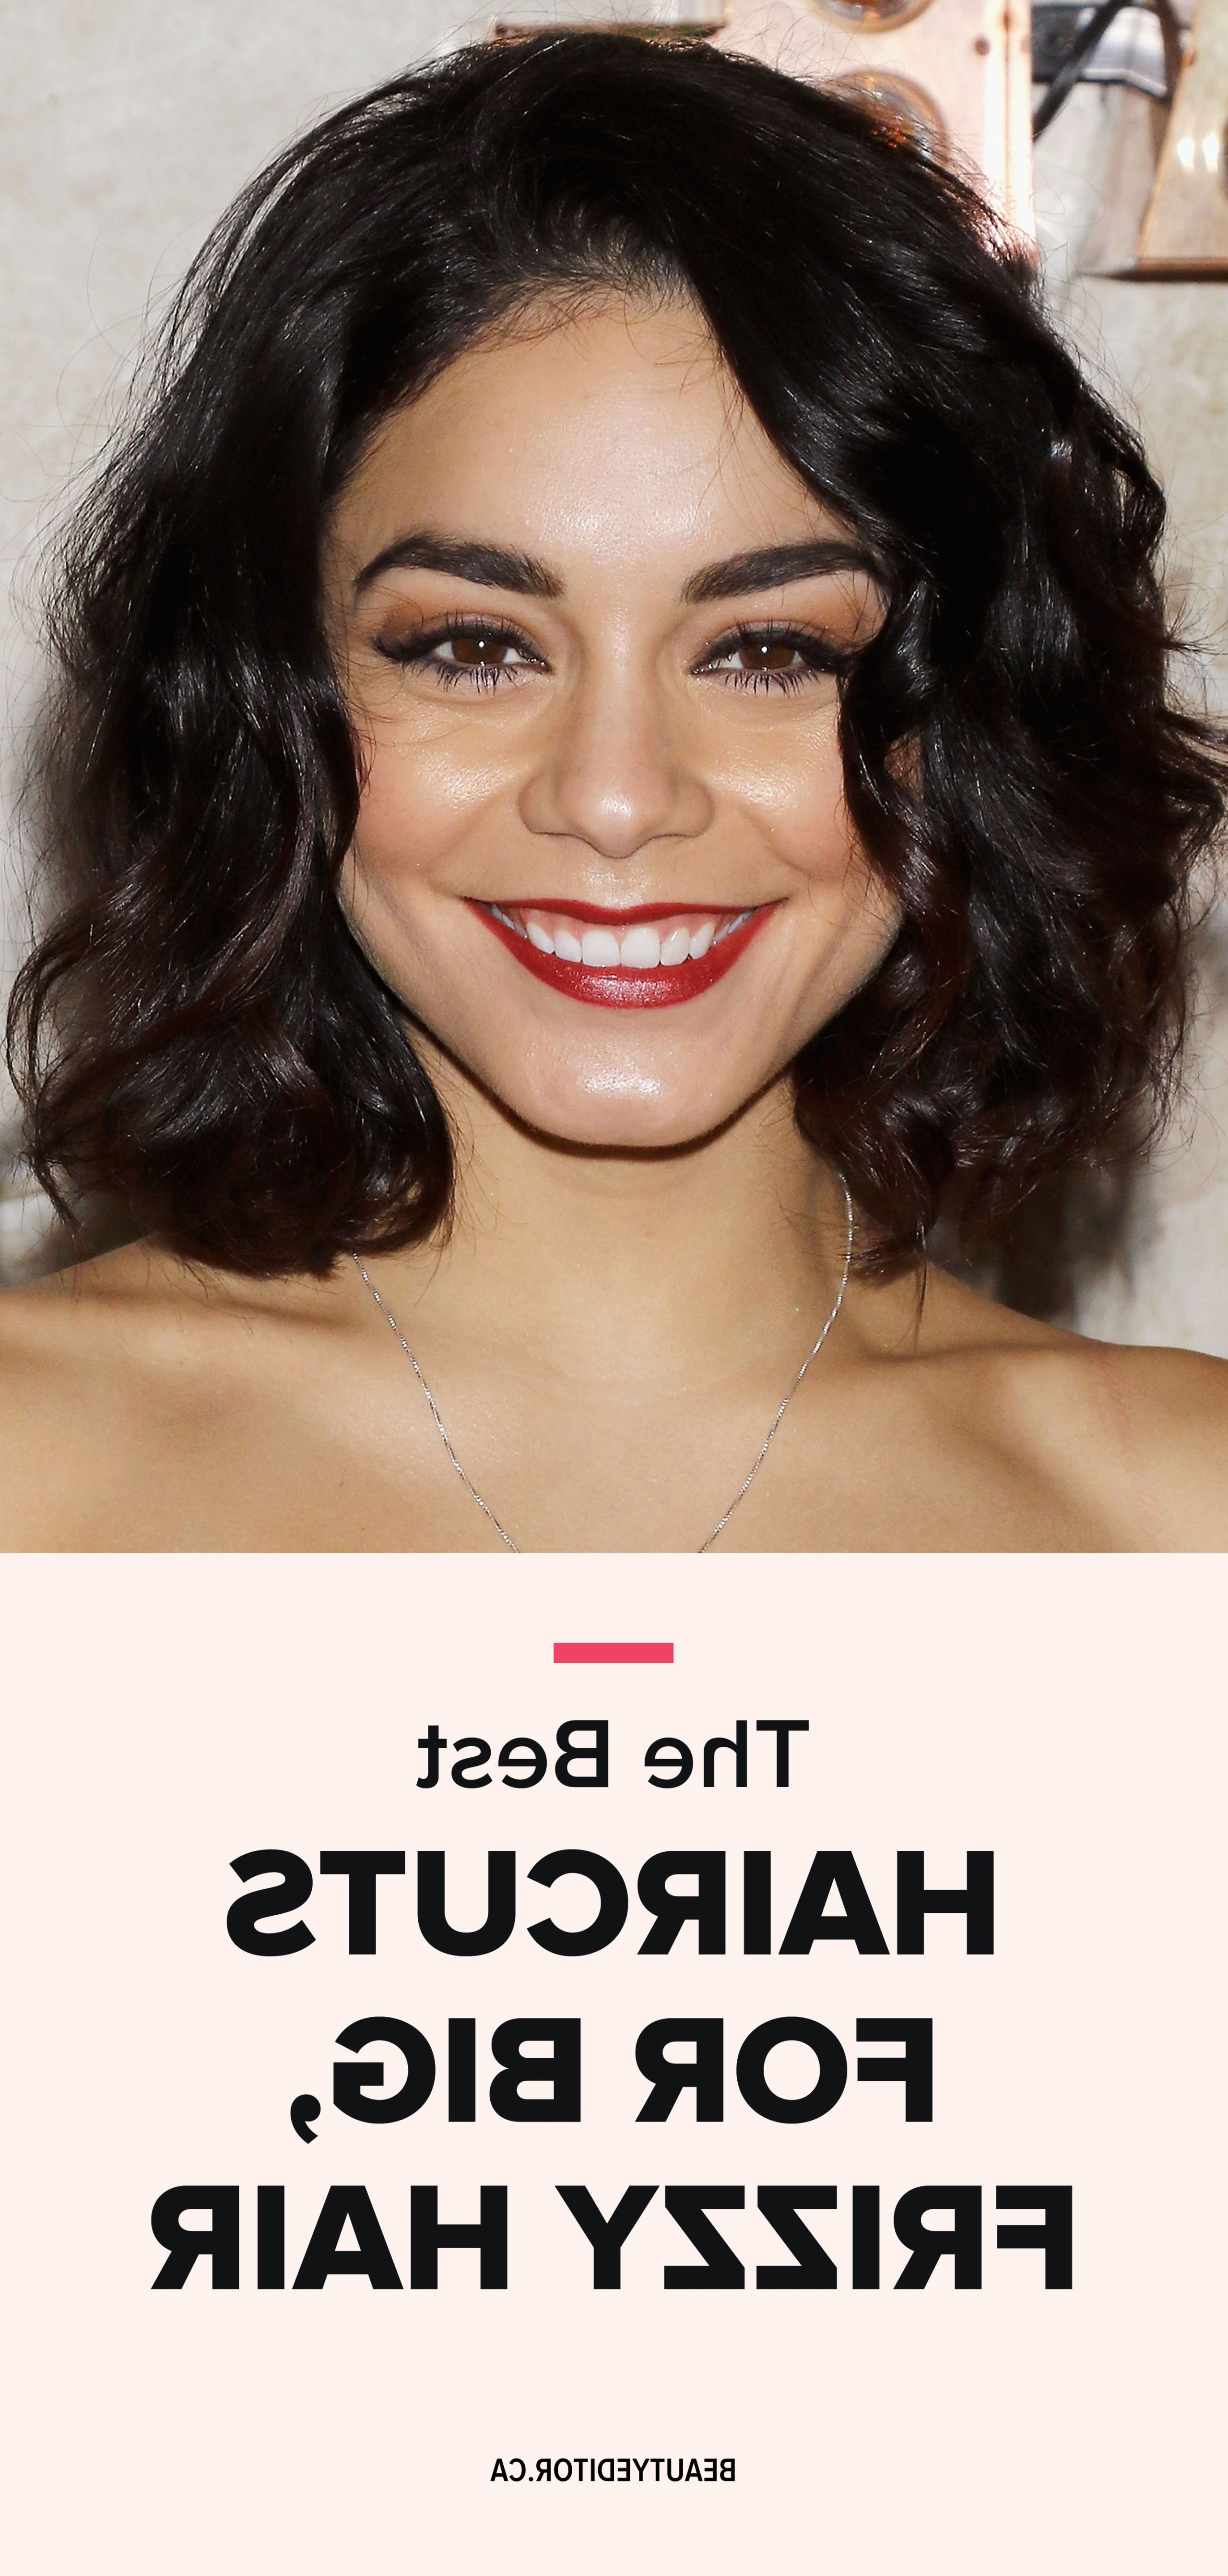 Ask A Hairstylist: The Best Haircuts For Big, Frizzy Hair | For The With Short Hairstyles For Big Cheeks (View 19 of 25)